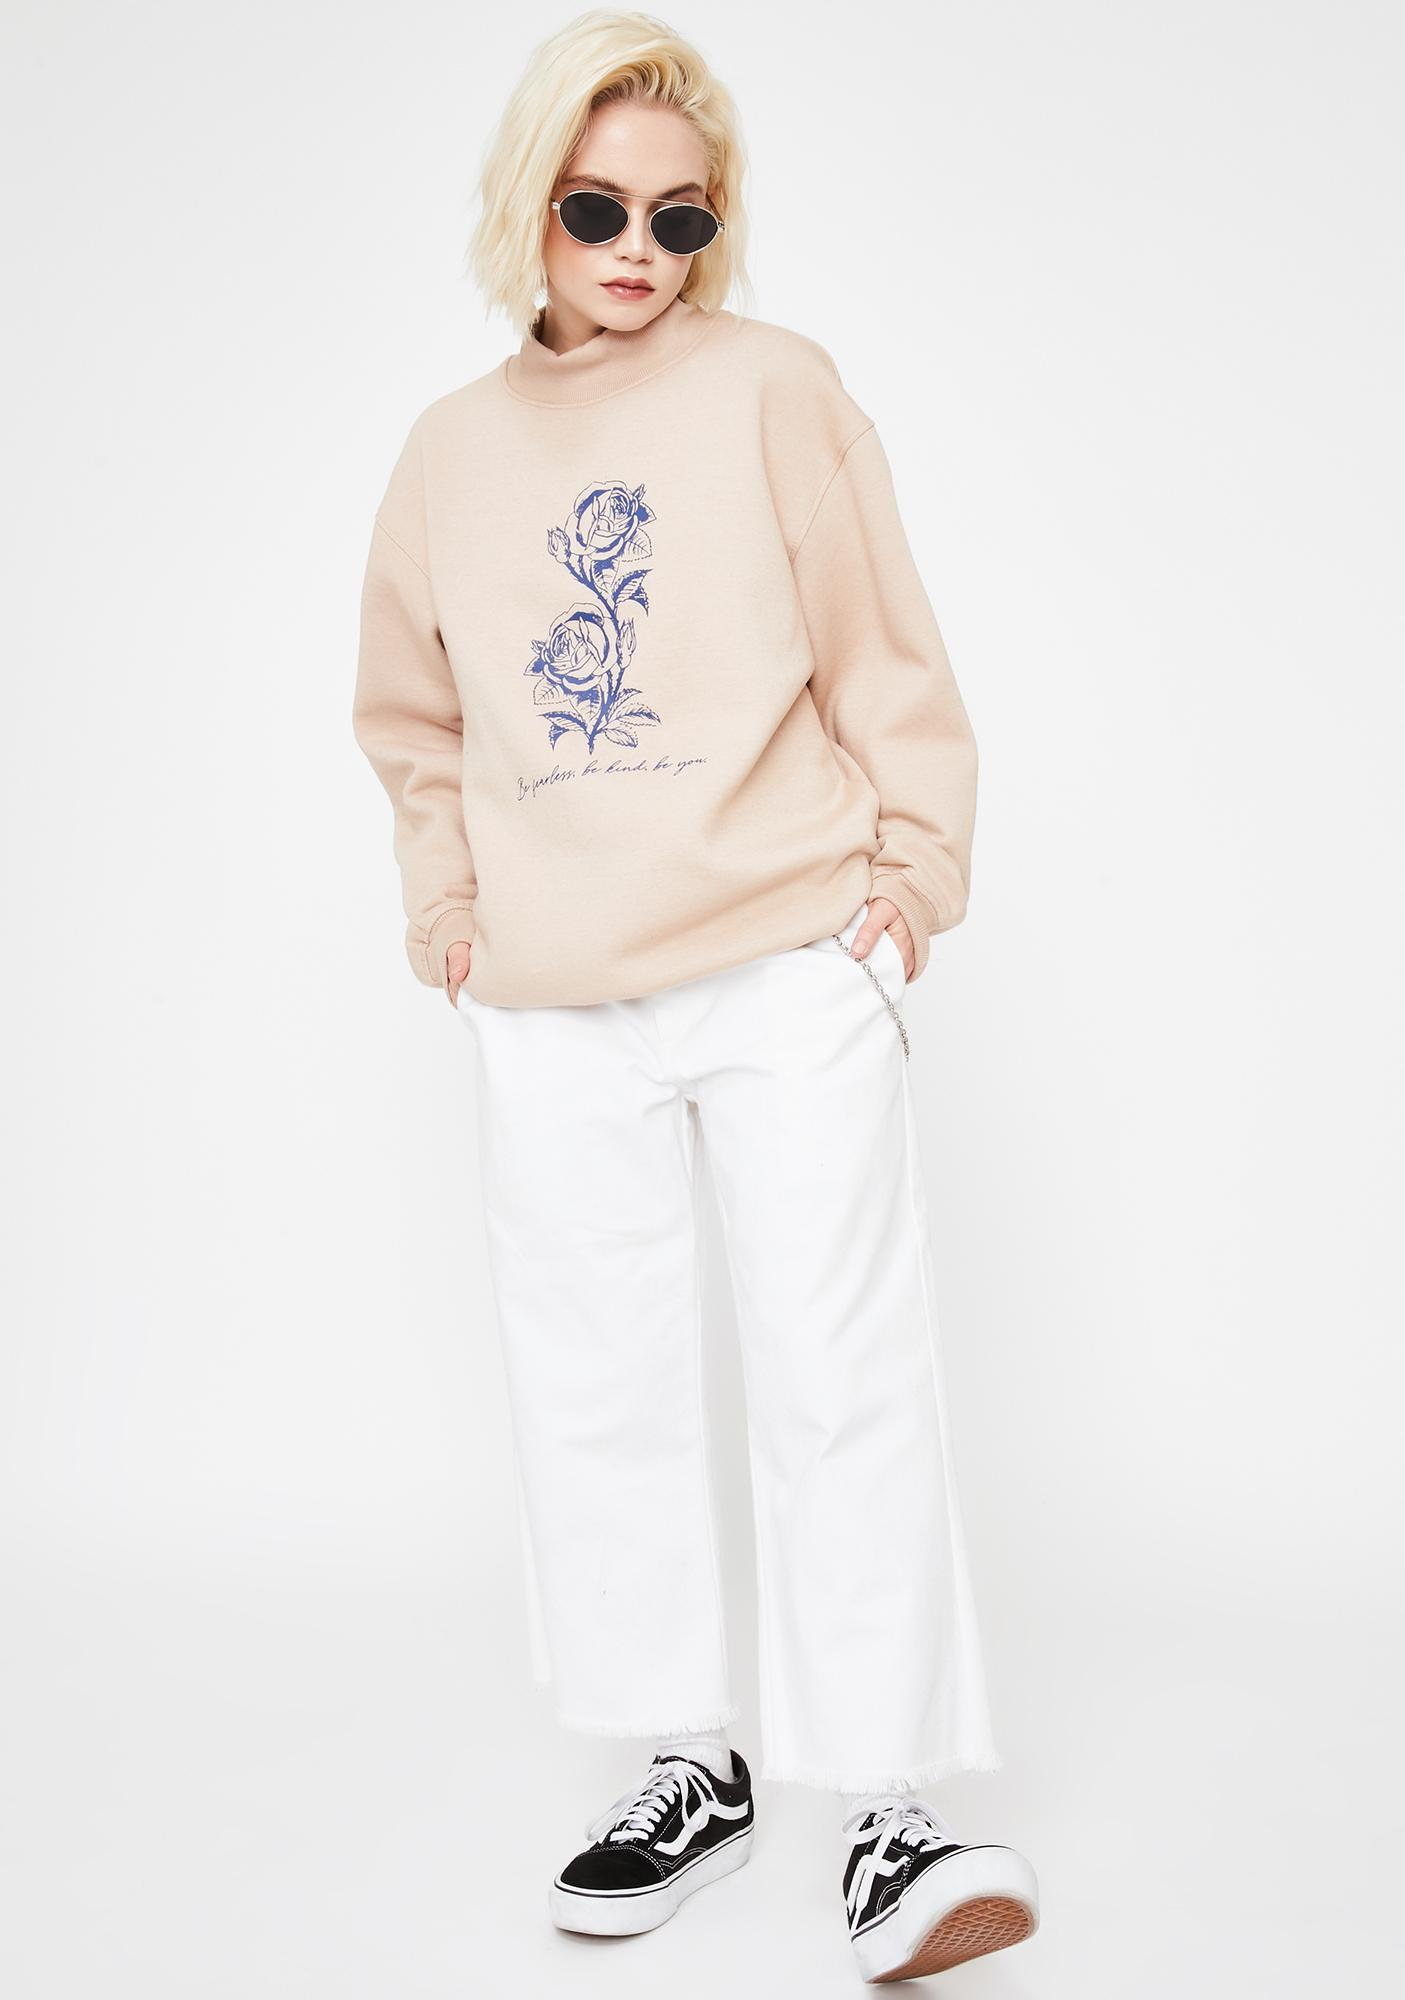 Daisy Street Flowers Mock Neck Graphic Sweatshirt